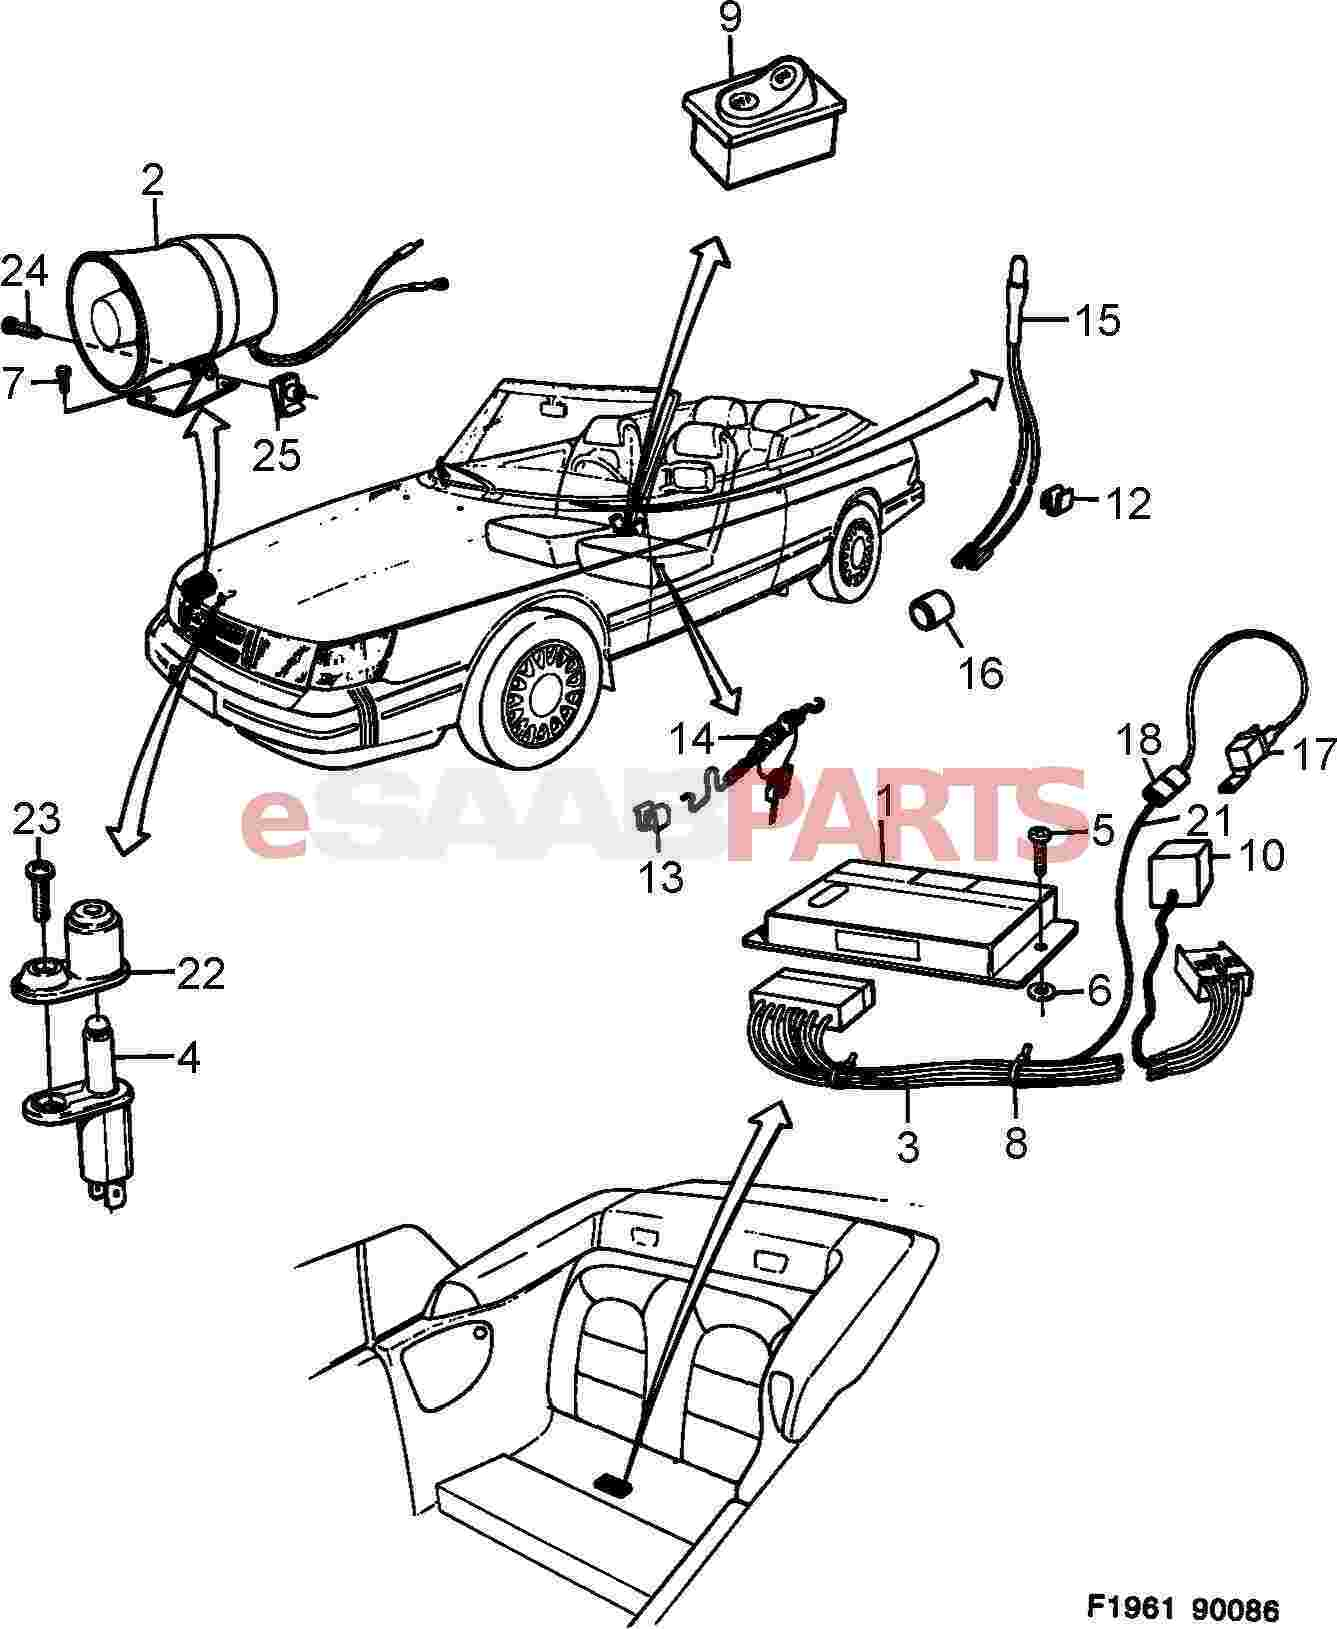 Saab 9 3 Convertible Engine Diagrams. Saab. Auto Wiring